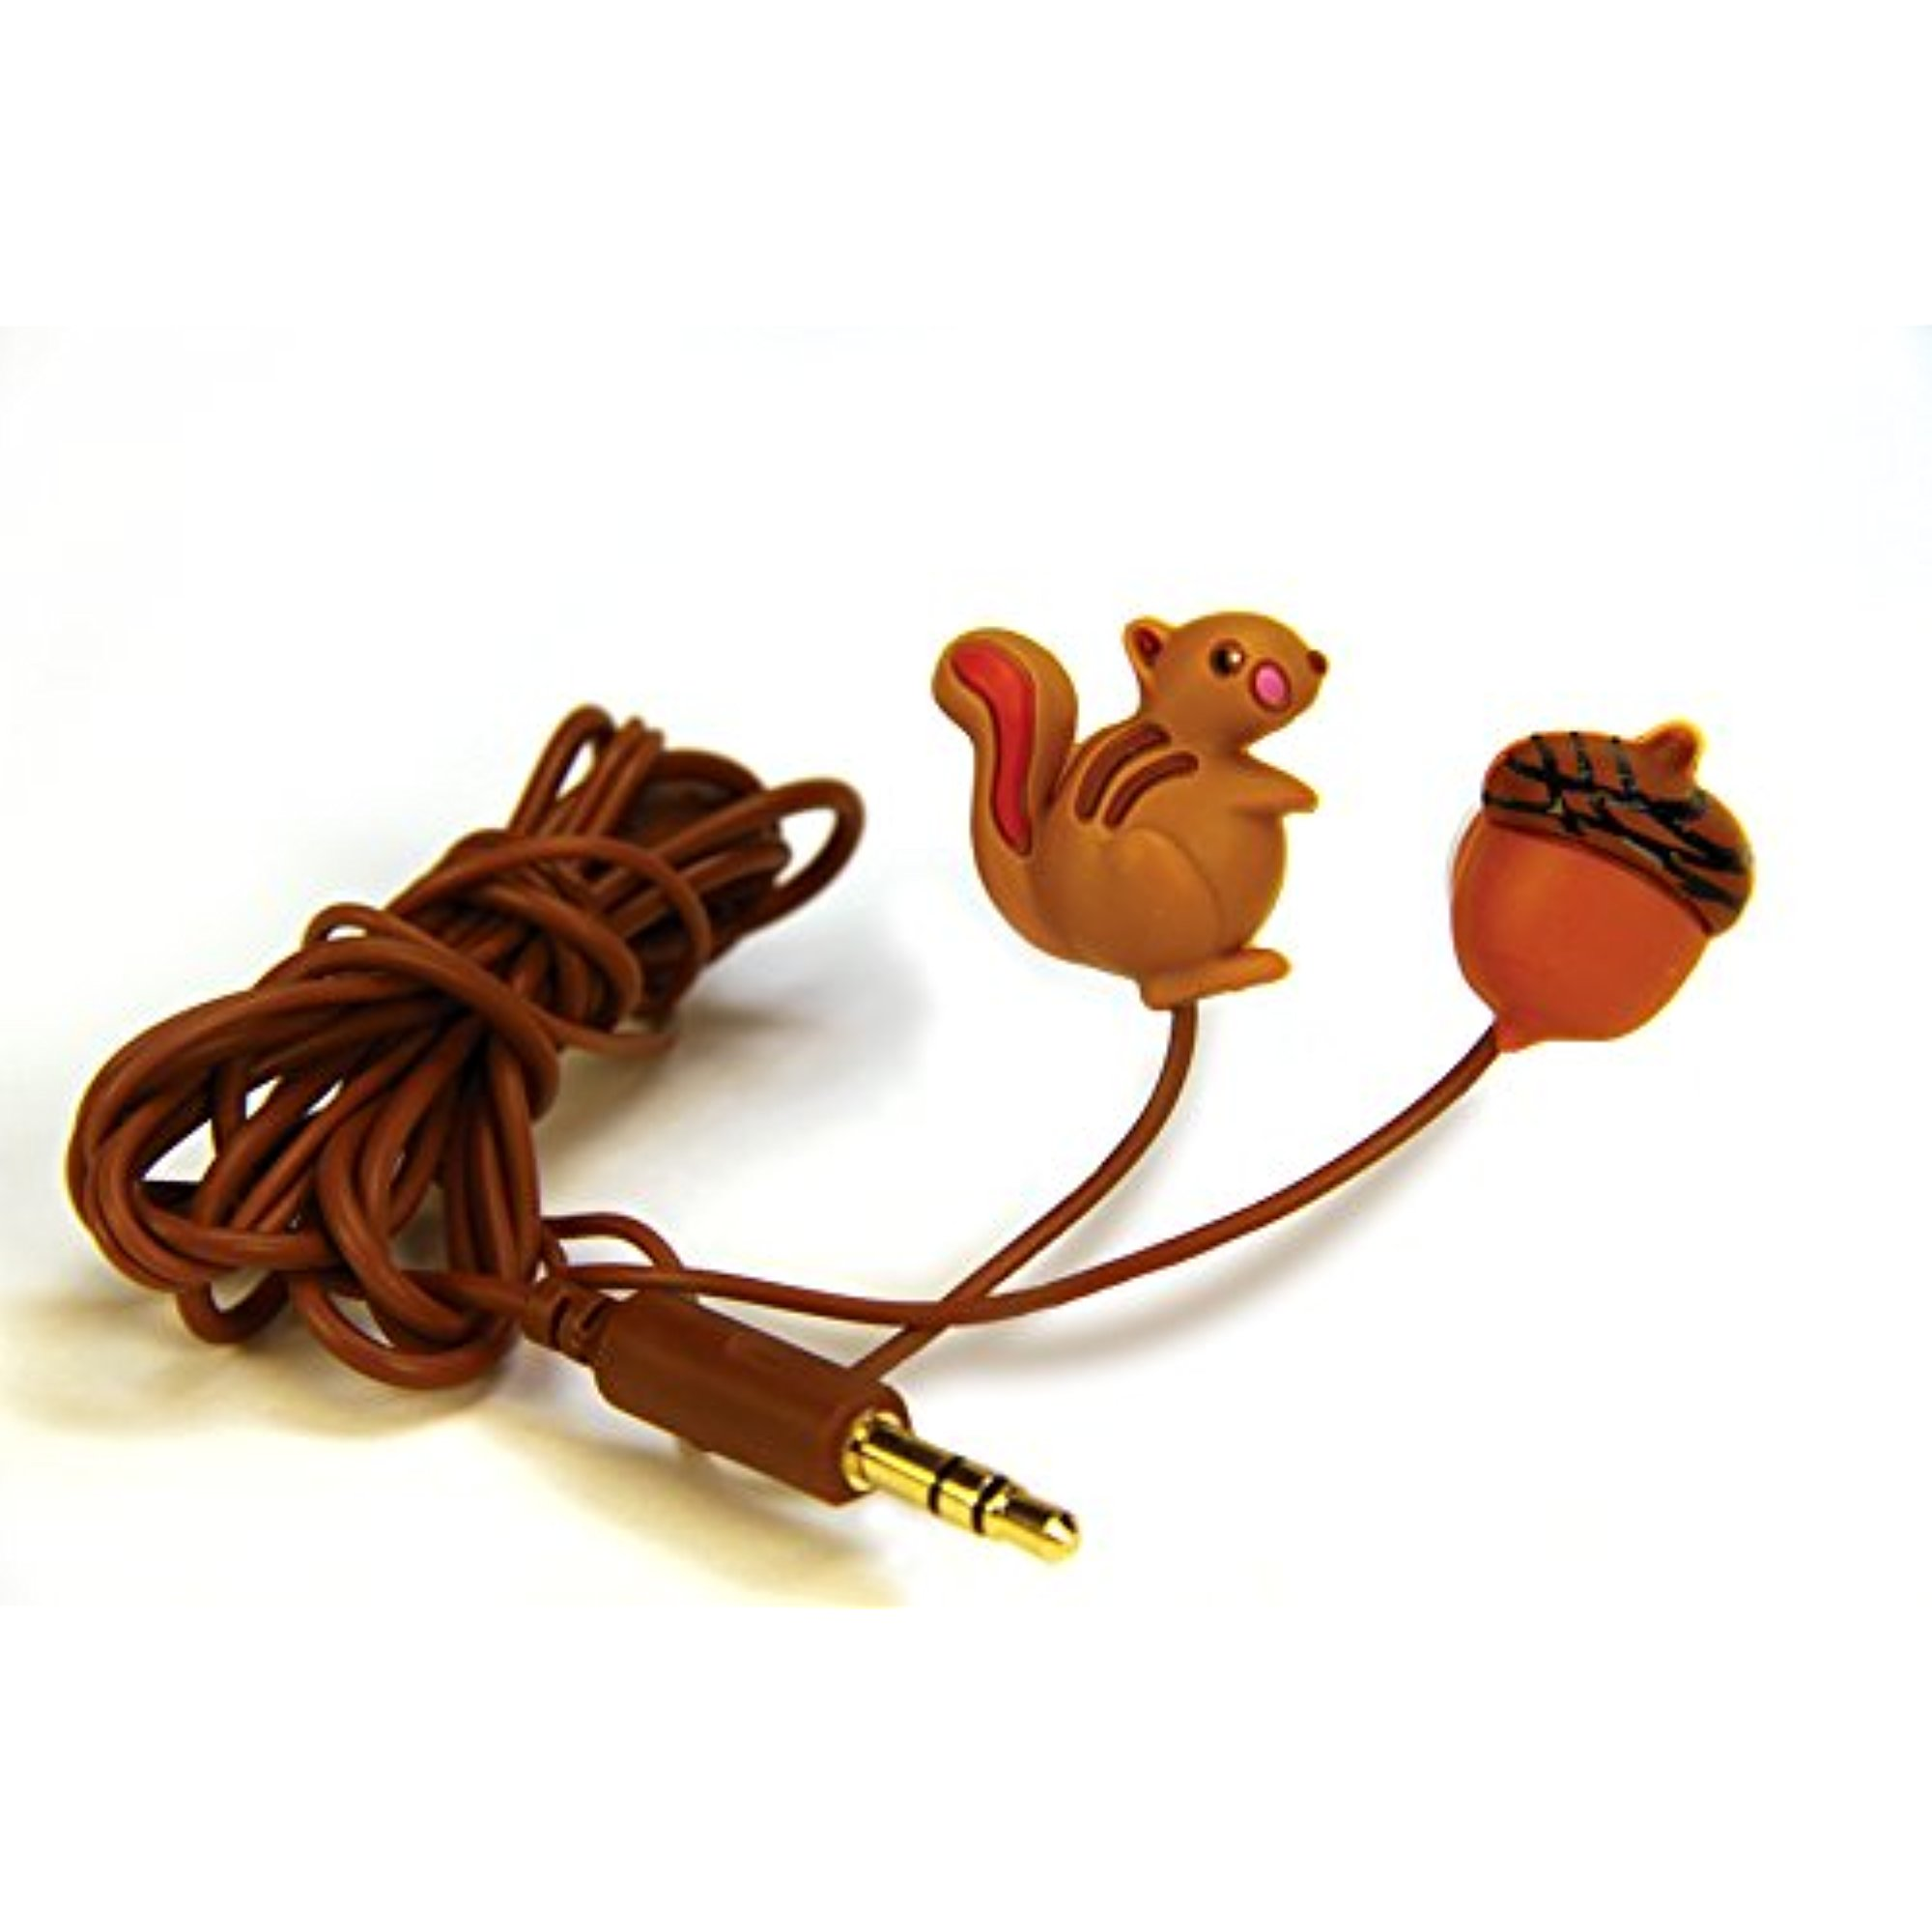 DCI Earbuds, Squirrel and Nut Headphone Earbuds - Brown